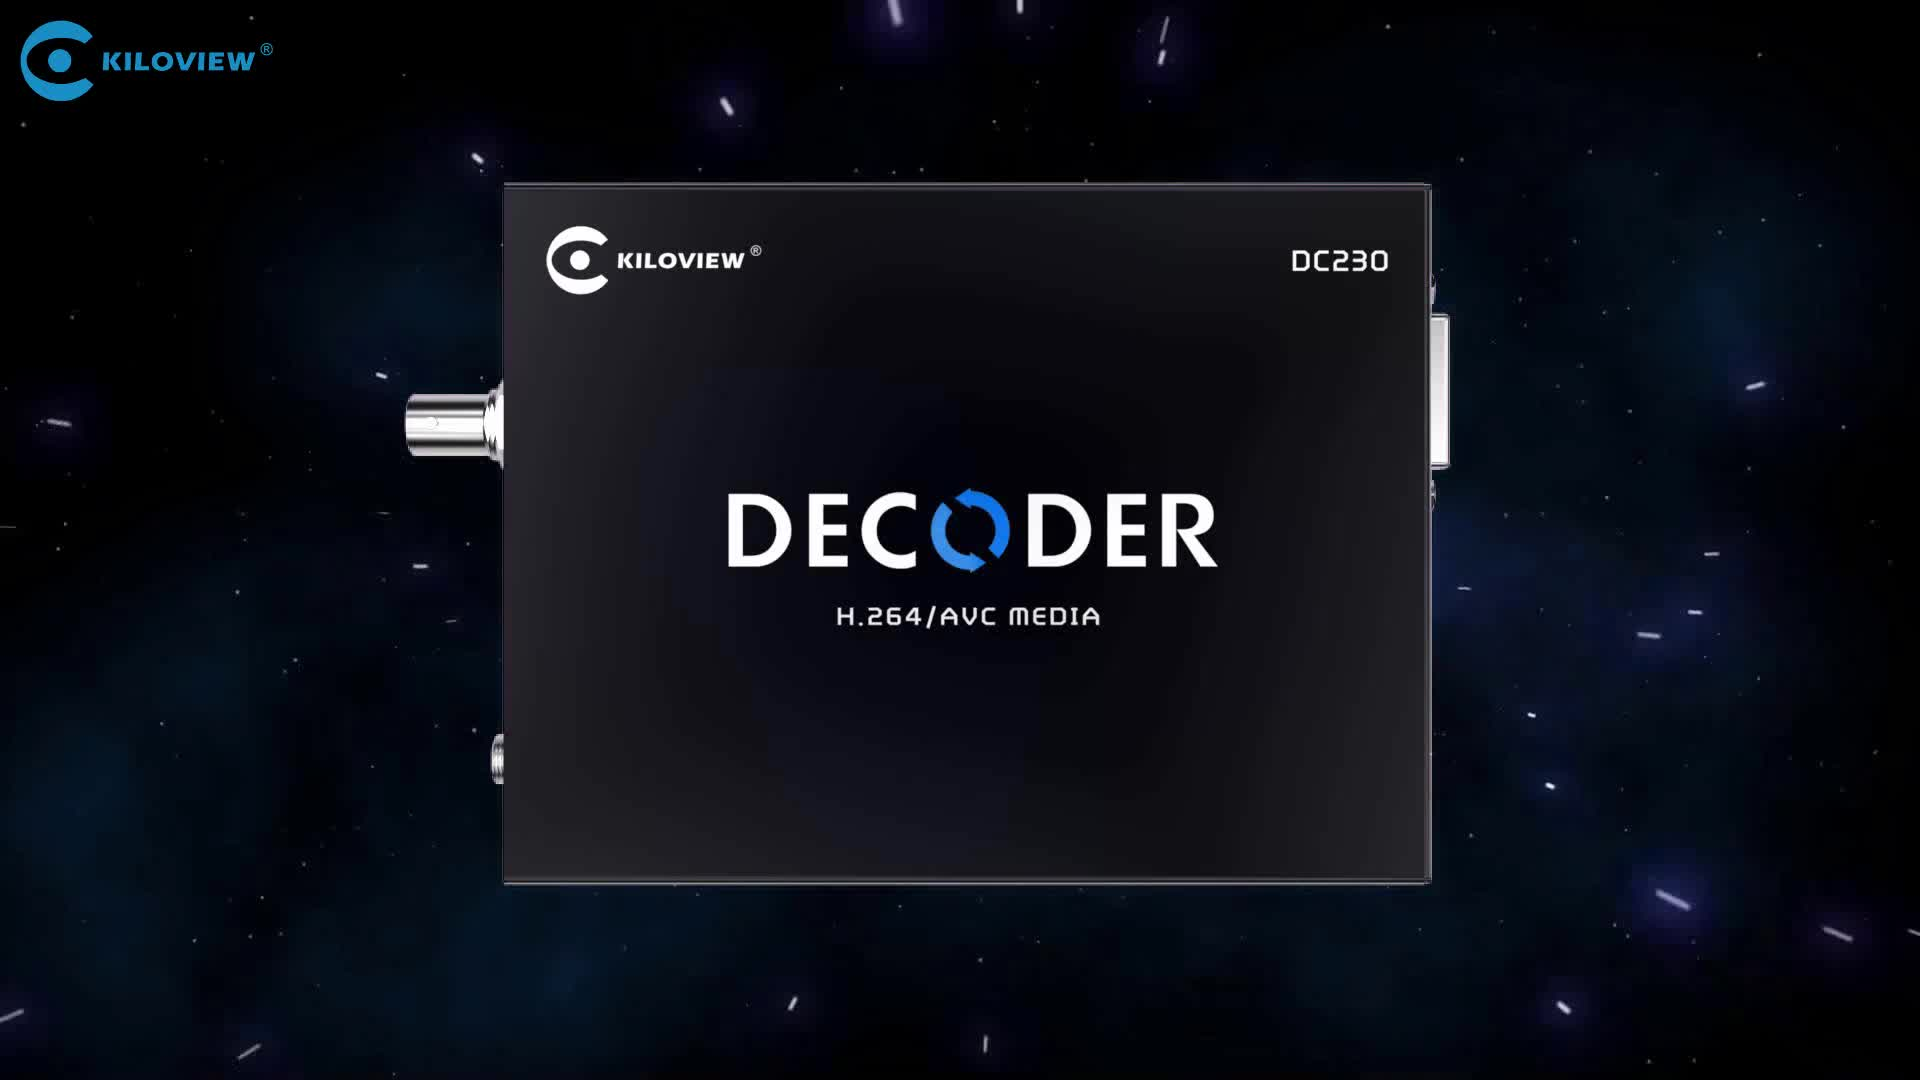 Kiloview H.264 HD Video Decoder, IP to SDI HDMI IPTV Video Decoder